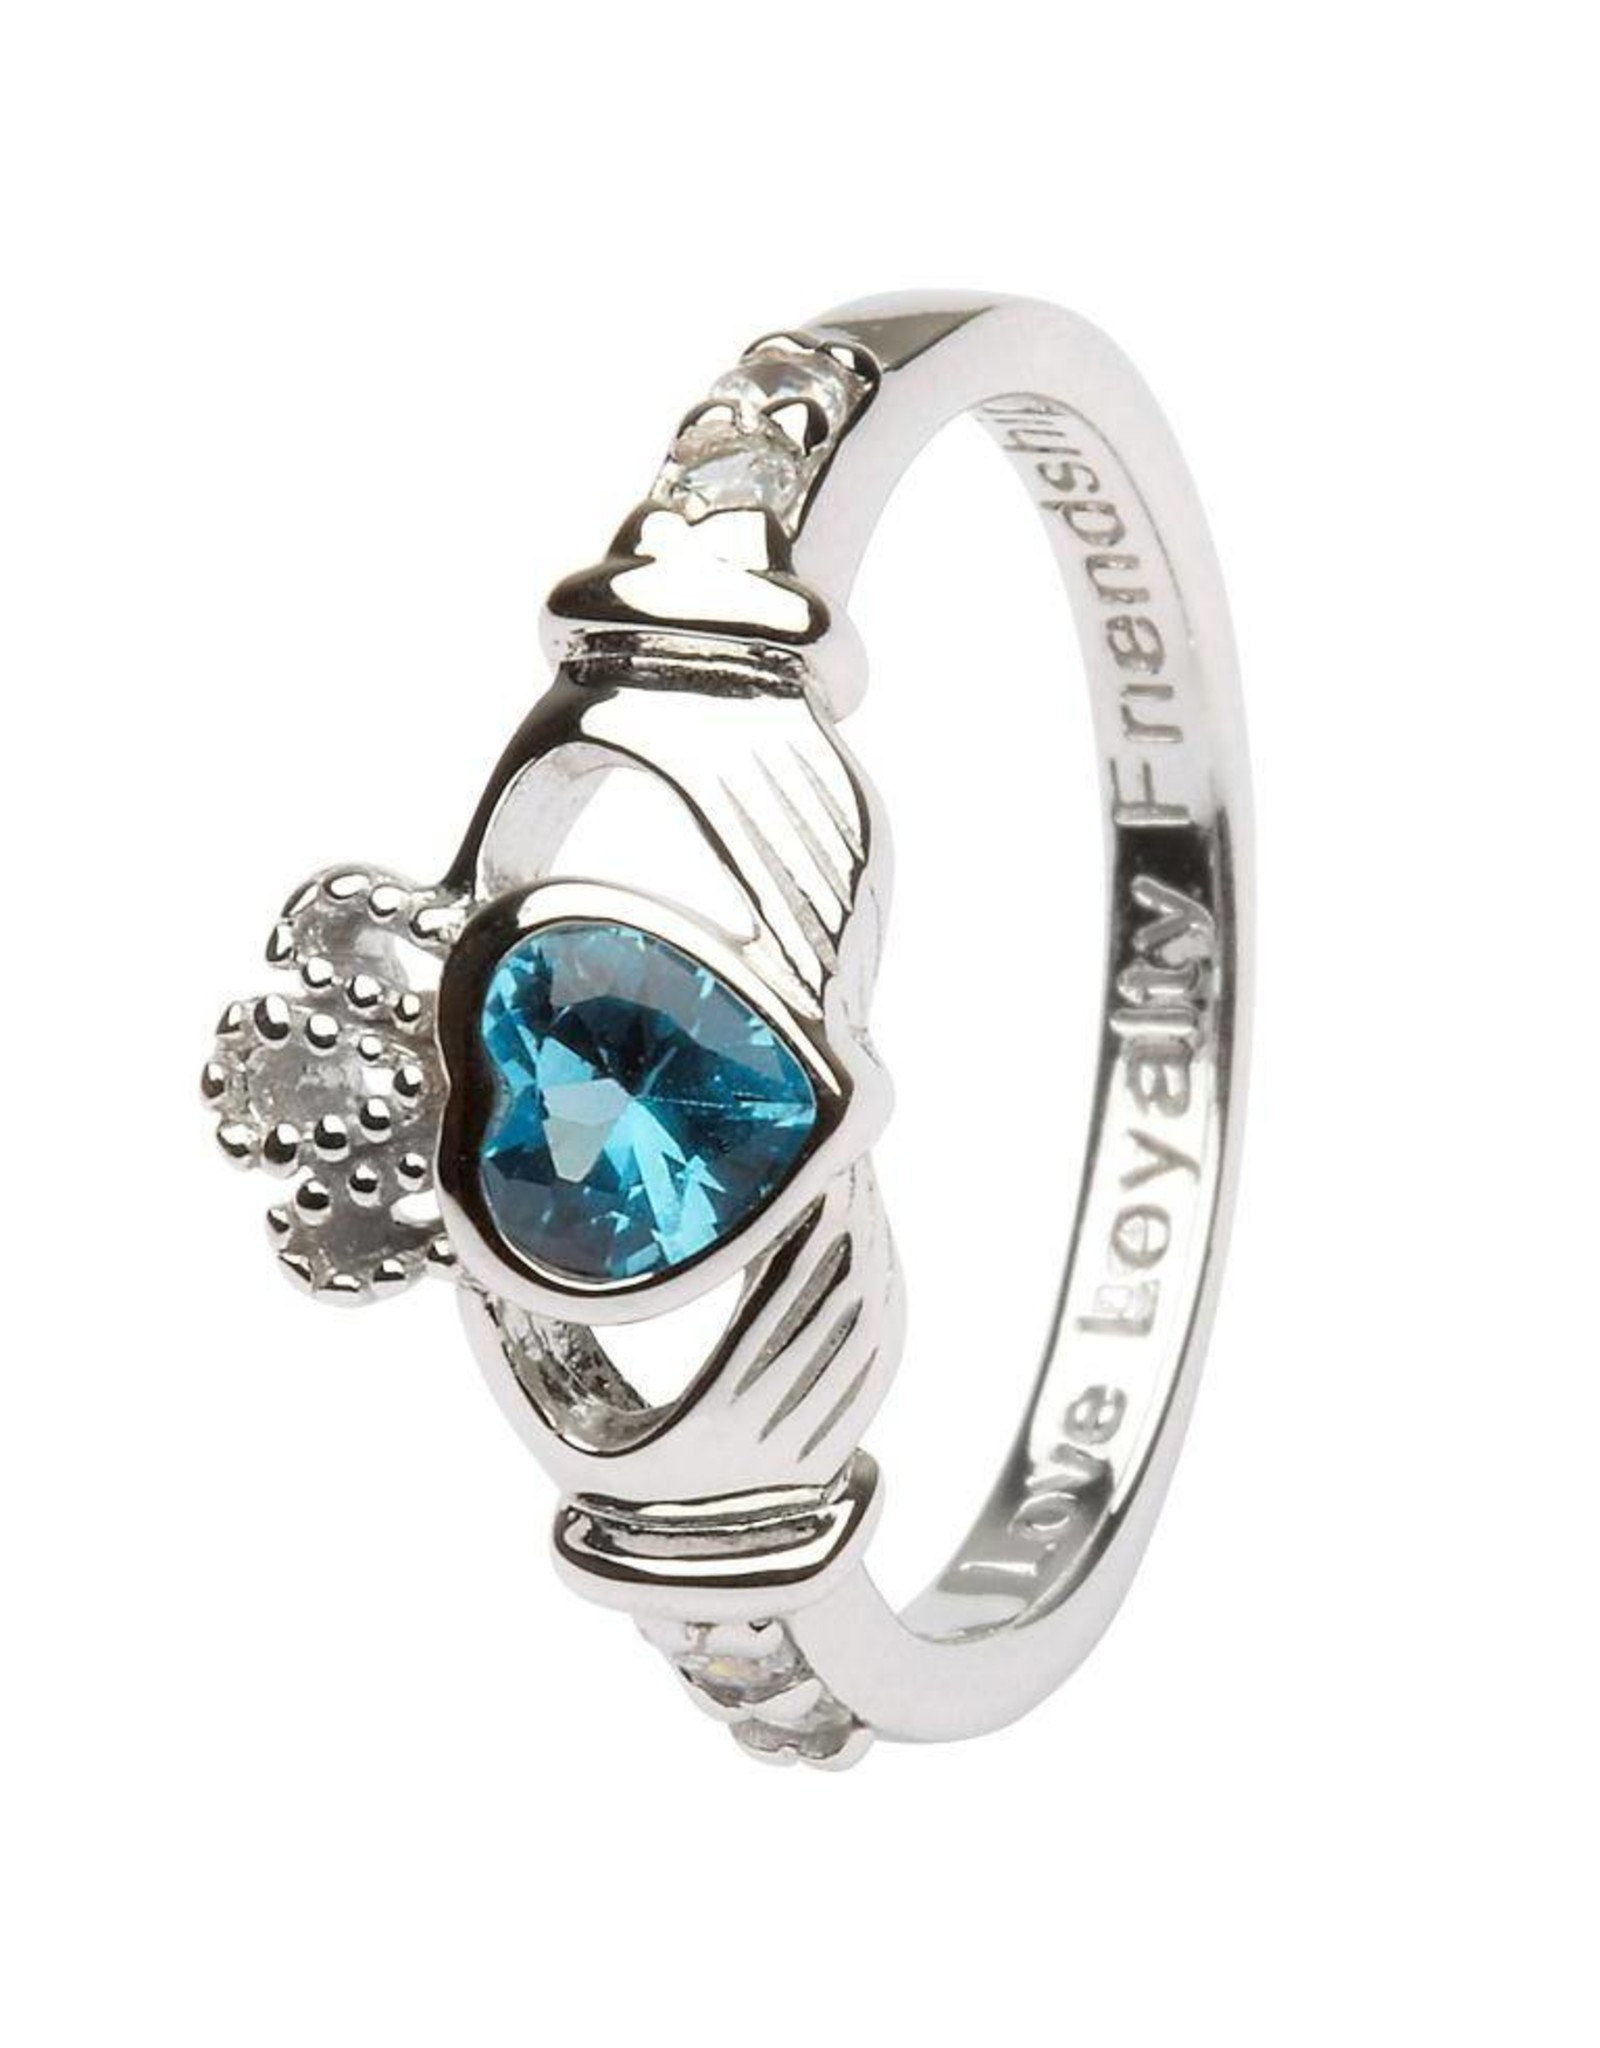 Shanore December Birthstone Claddagh Ring